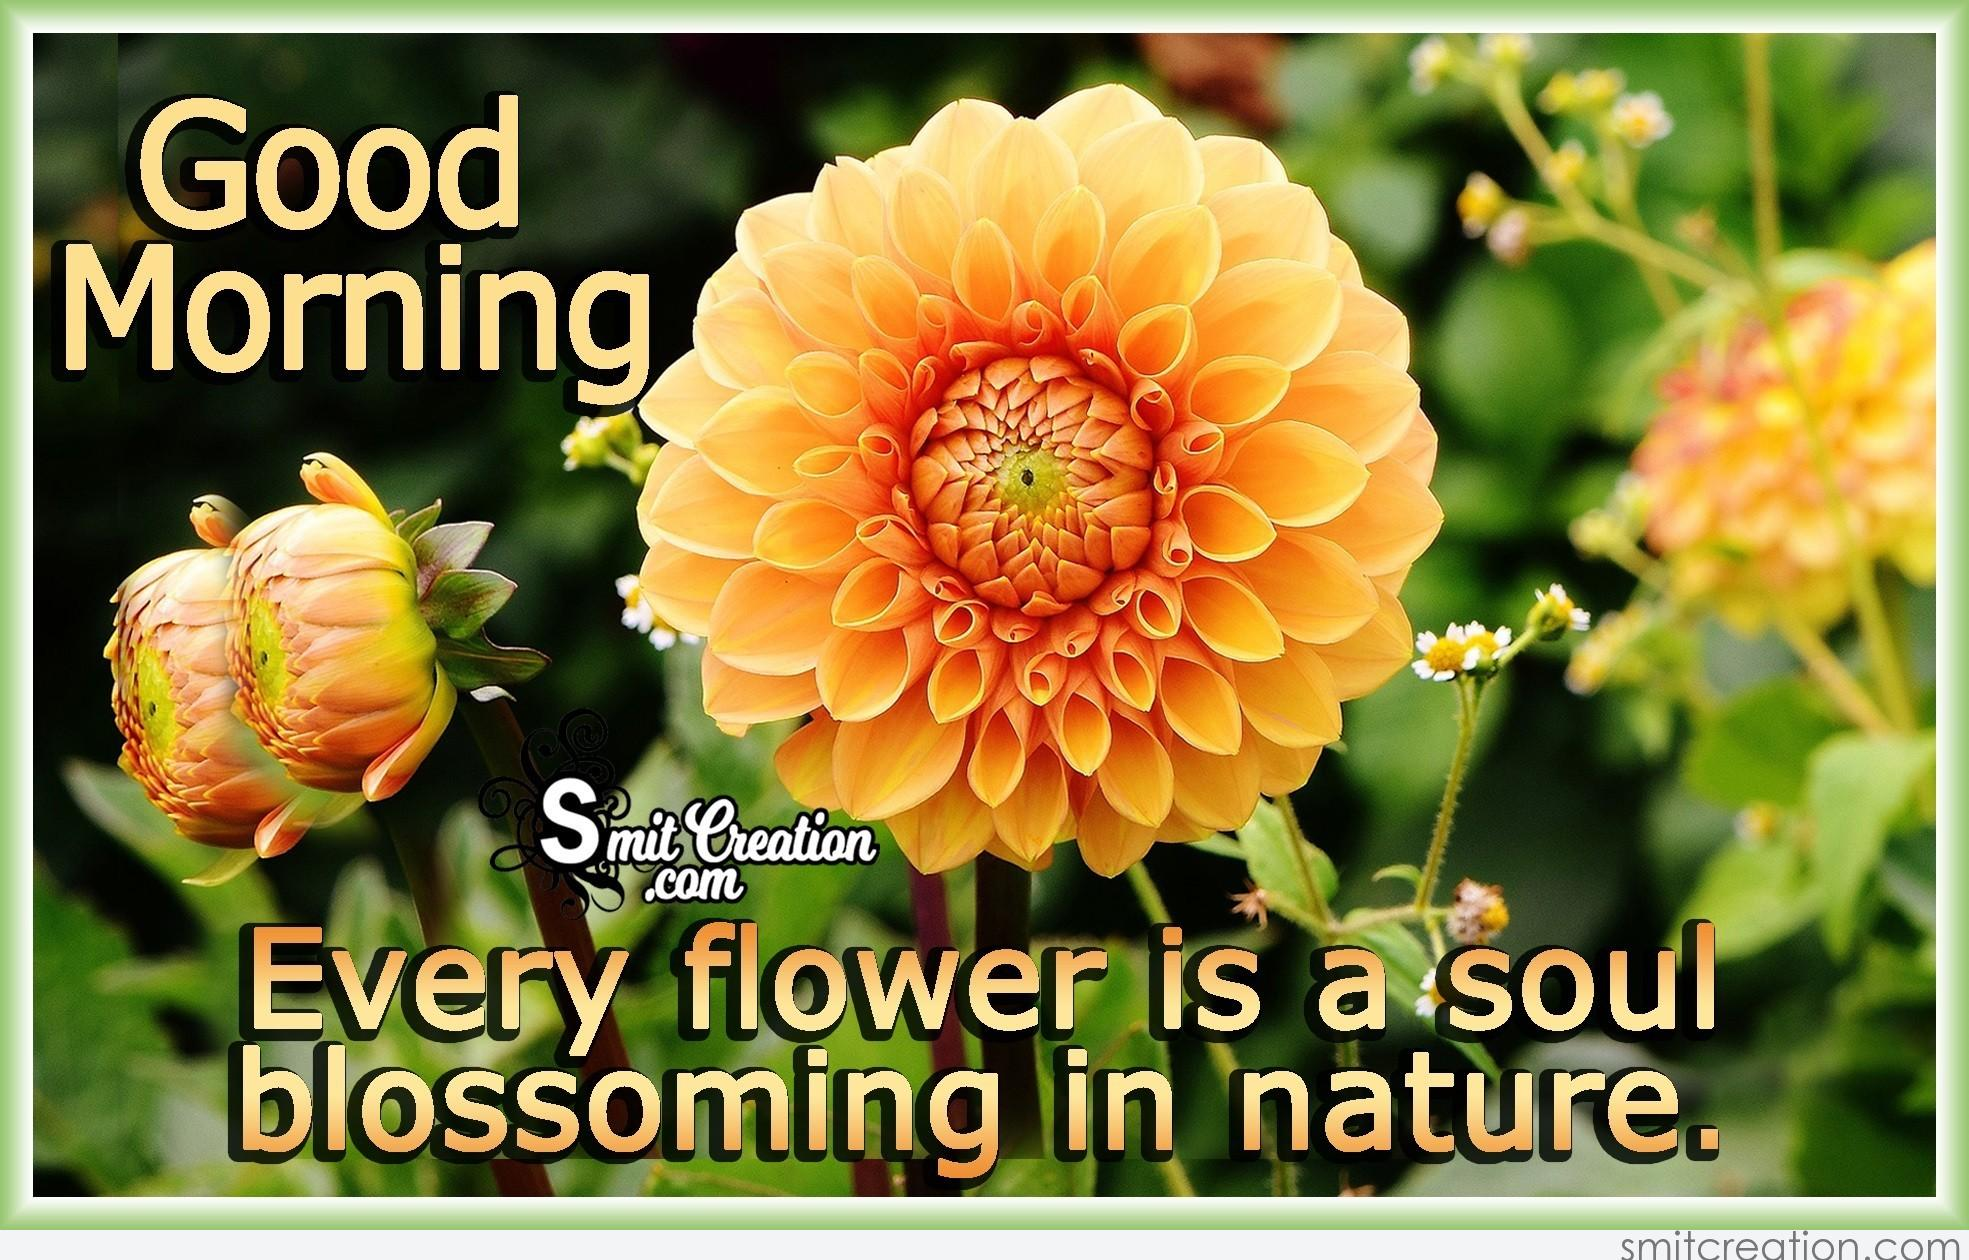 Good Morning Flowers Images With Quote Smitcreation Com